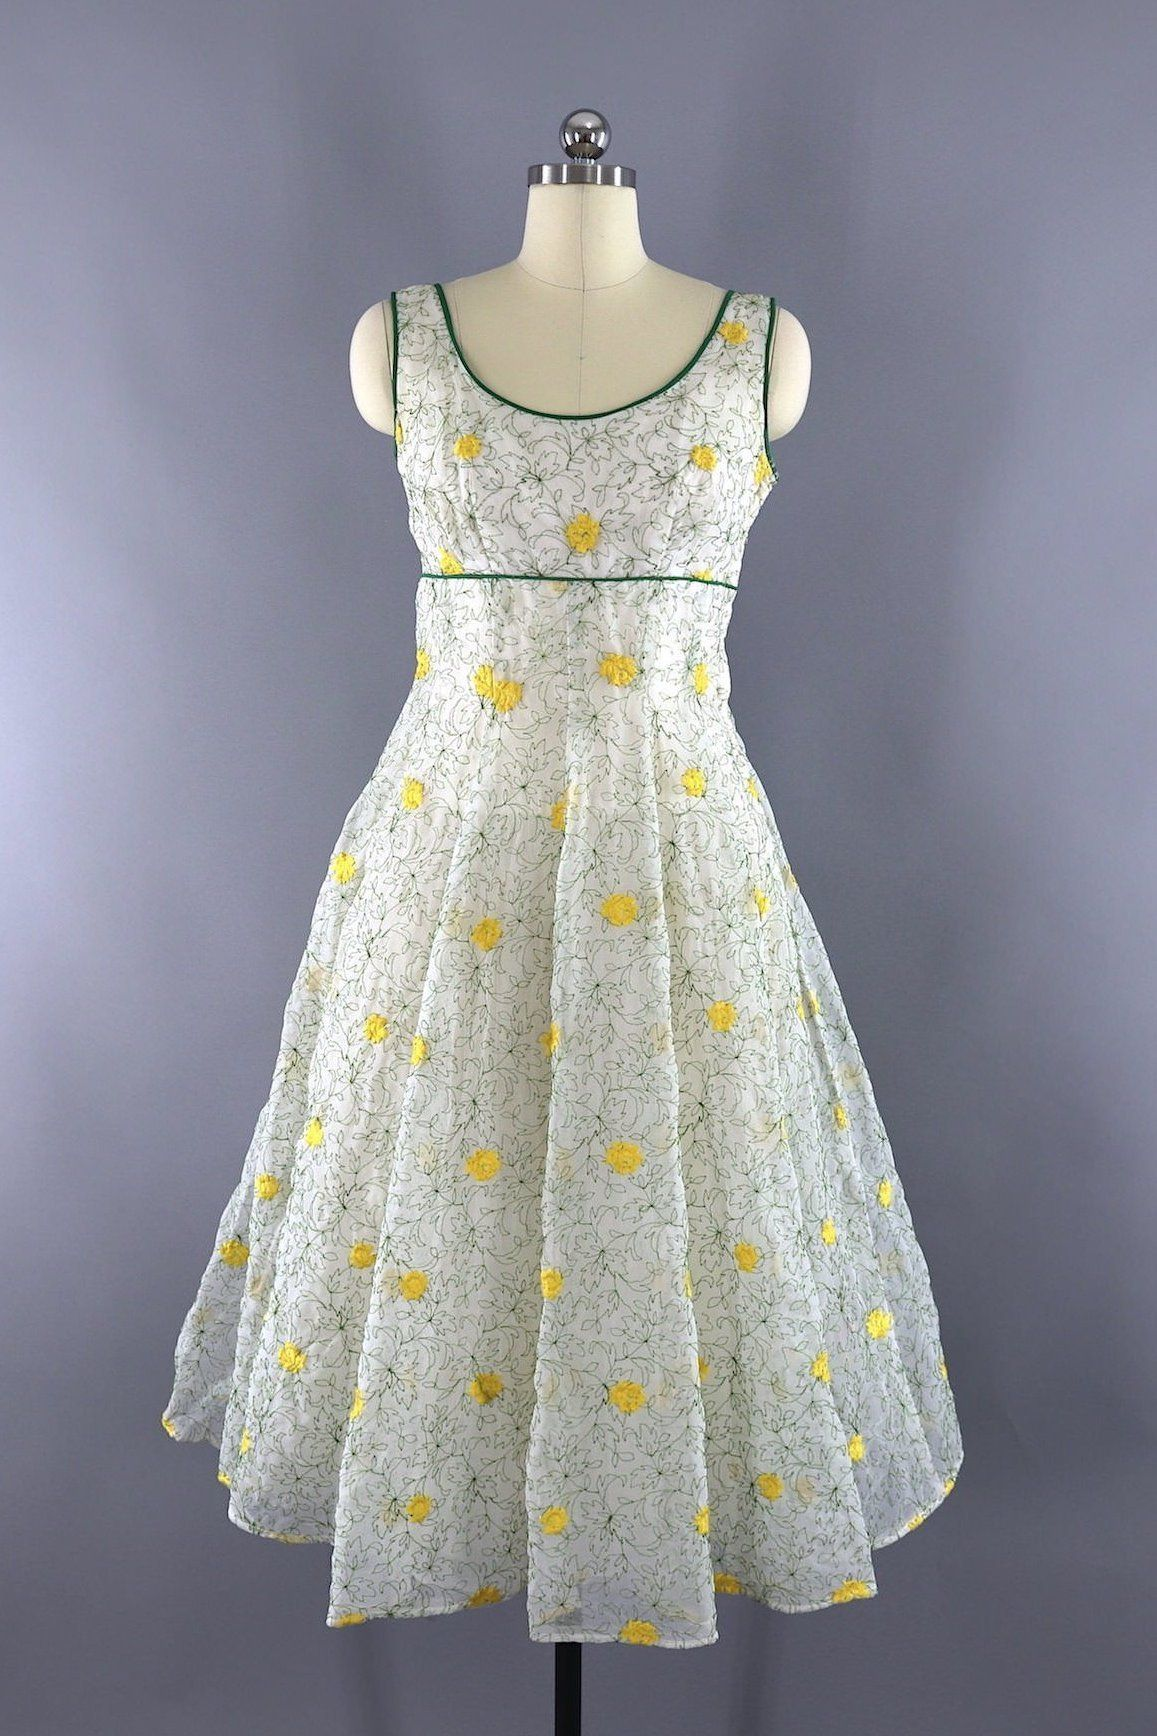 Vintage 1950s Garden Party Dress White And Yellow Floral Embroidery White Dress Party Womens Vintage Dresses Dresses [ 1736 x 1157 Pixel ]